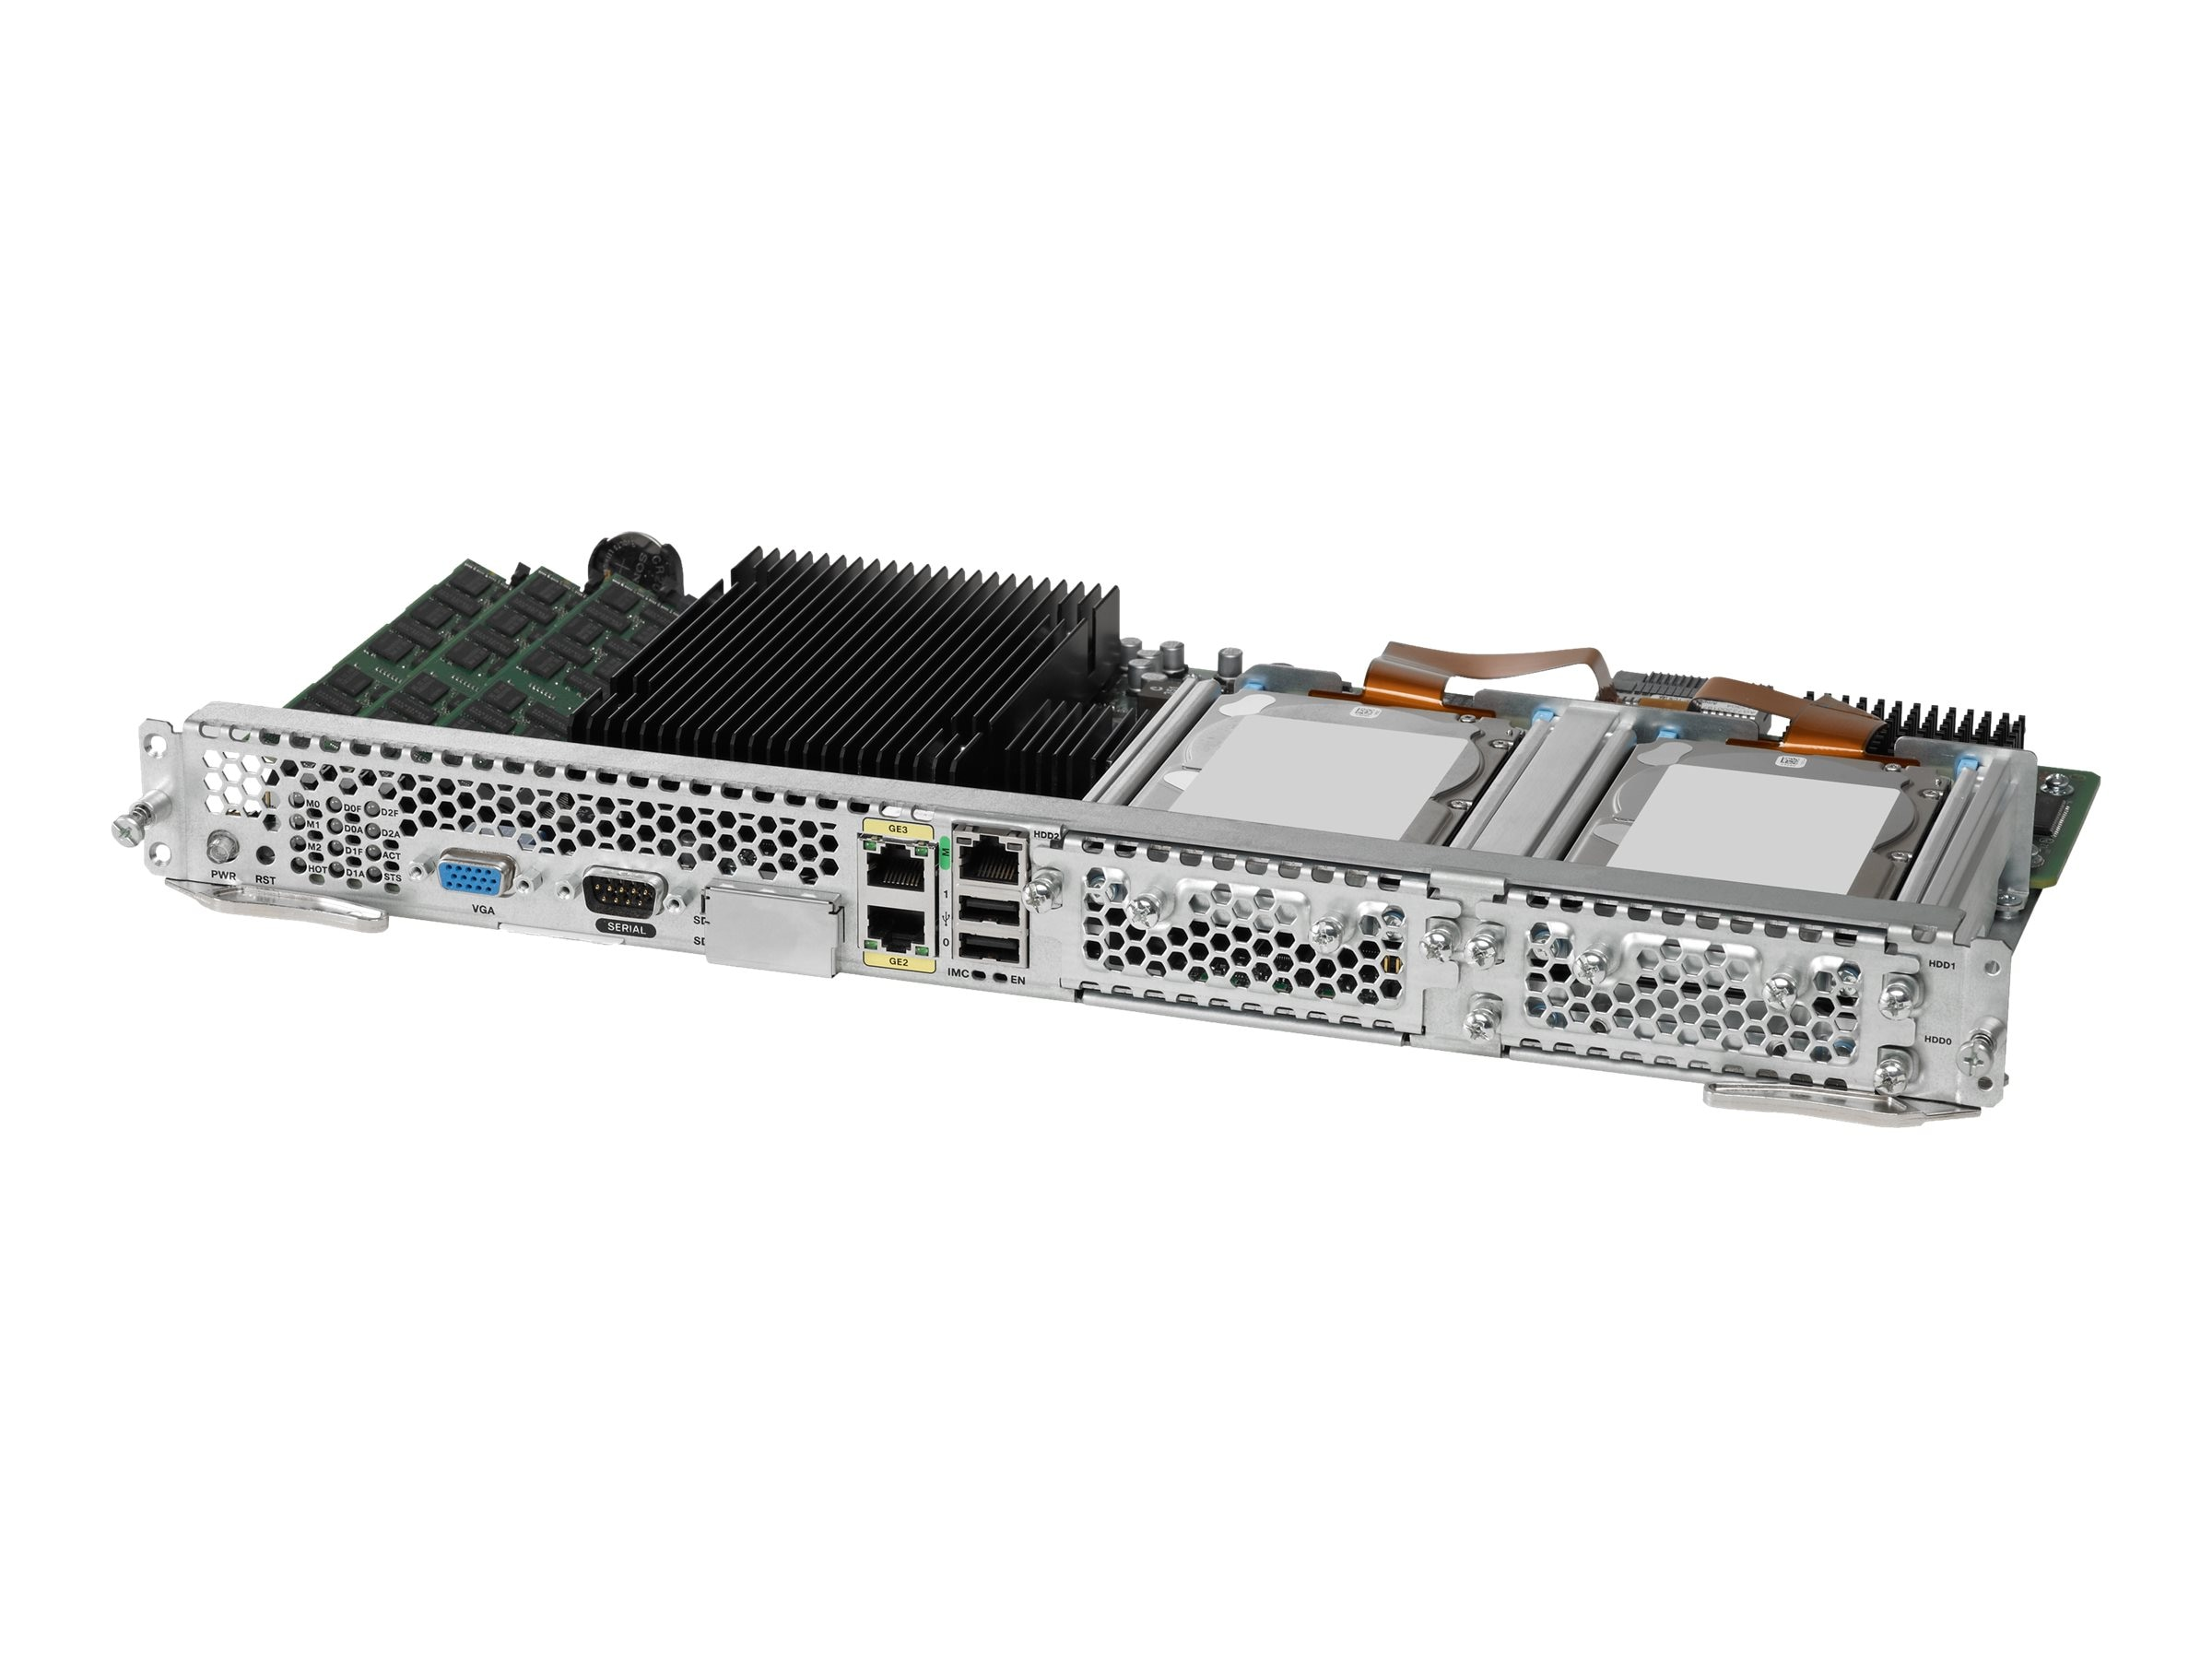 Cisco UCS E-Series Double-Wide Server Blades Xeon 6C E5-2400 v2 8GB RAM 2xSD Cards, UCS-E160D-M2/K9, 18532195, Servers - Blade